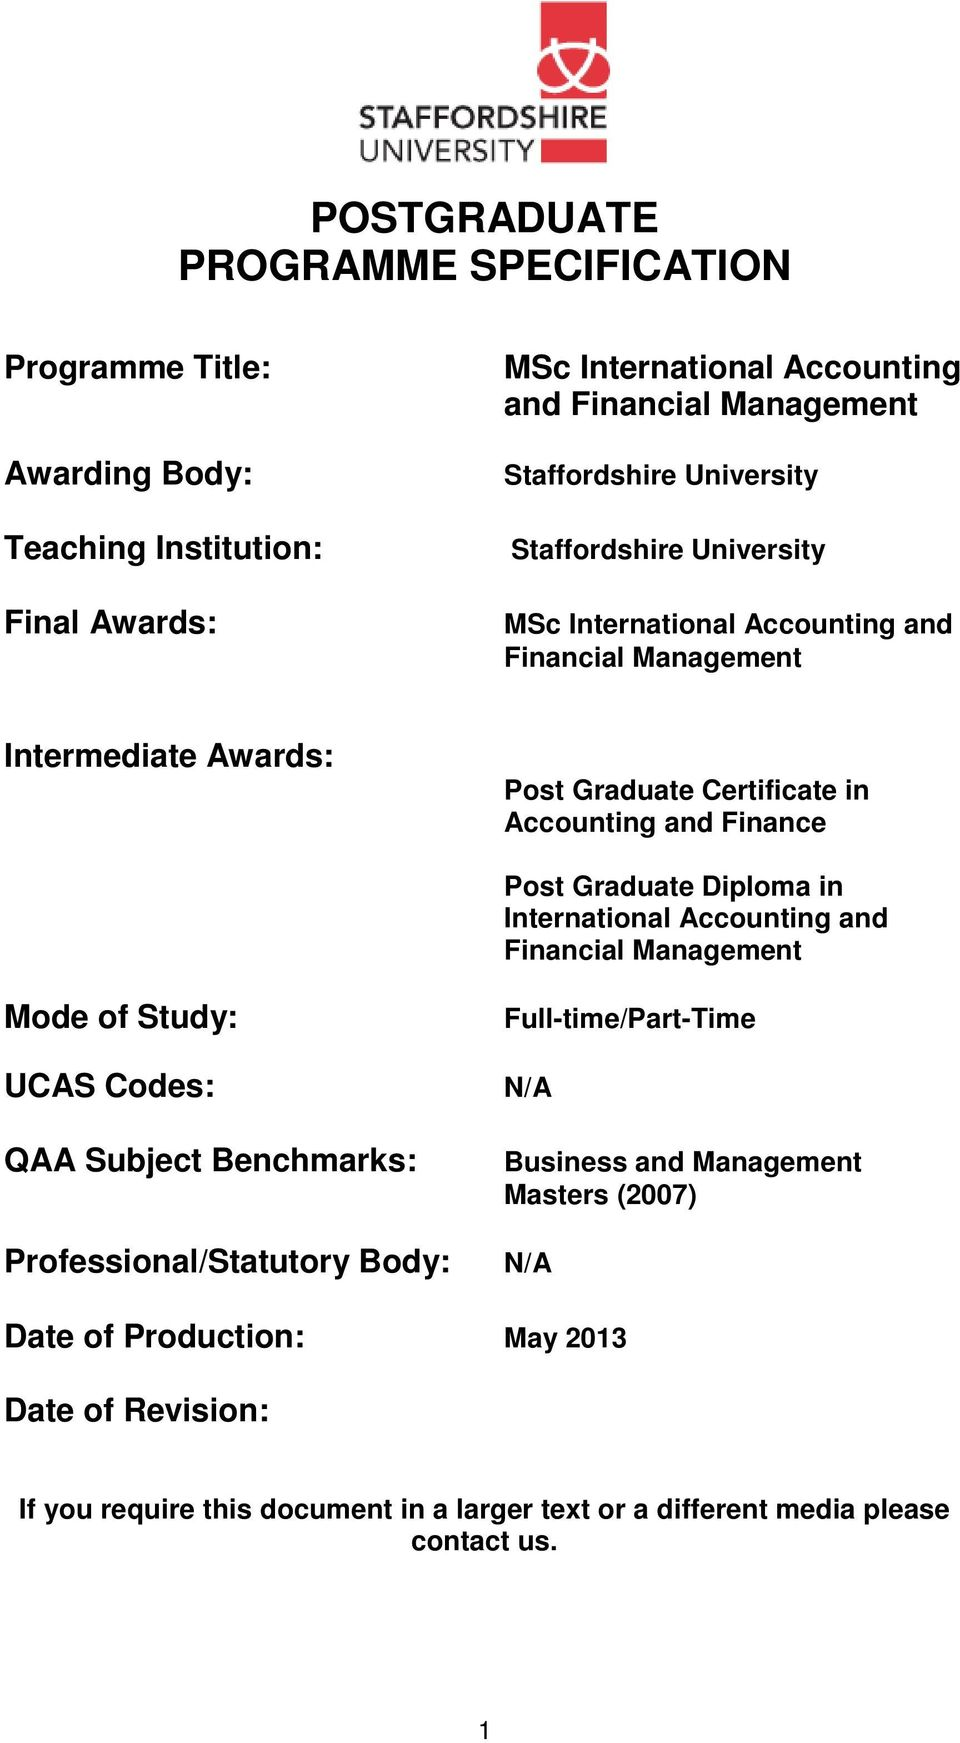 Graduate Diploma in International Accounting and Financial Management Mode of Study: UCAS Codes: QAA Subject Benchmarks: Professional/Statutory Body: Full-time/Part-Time